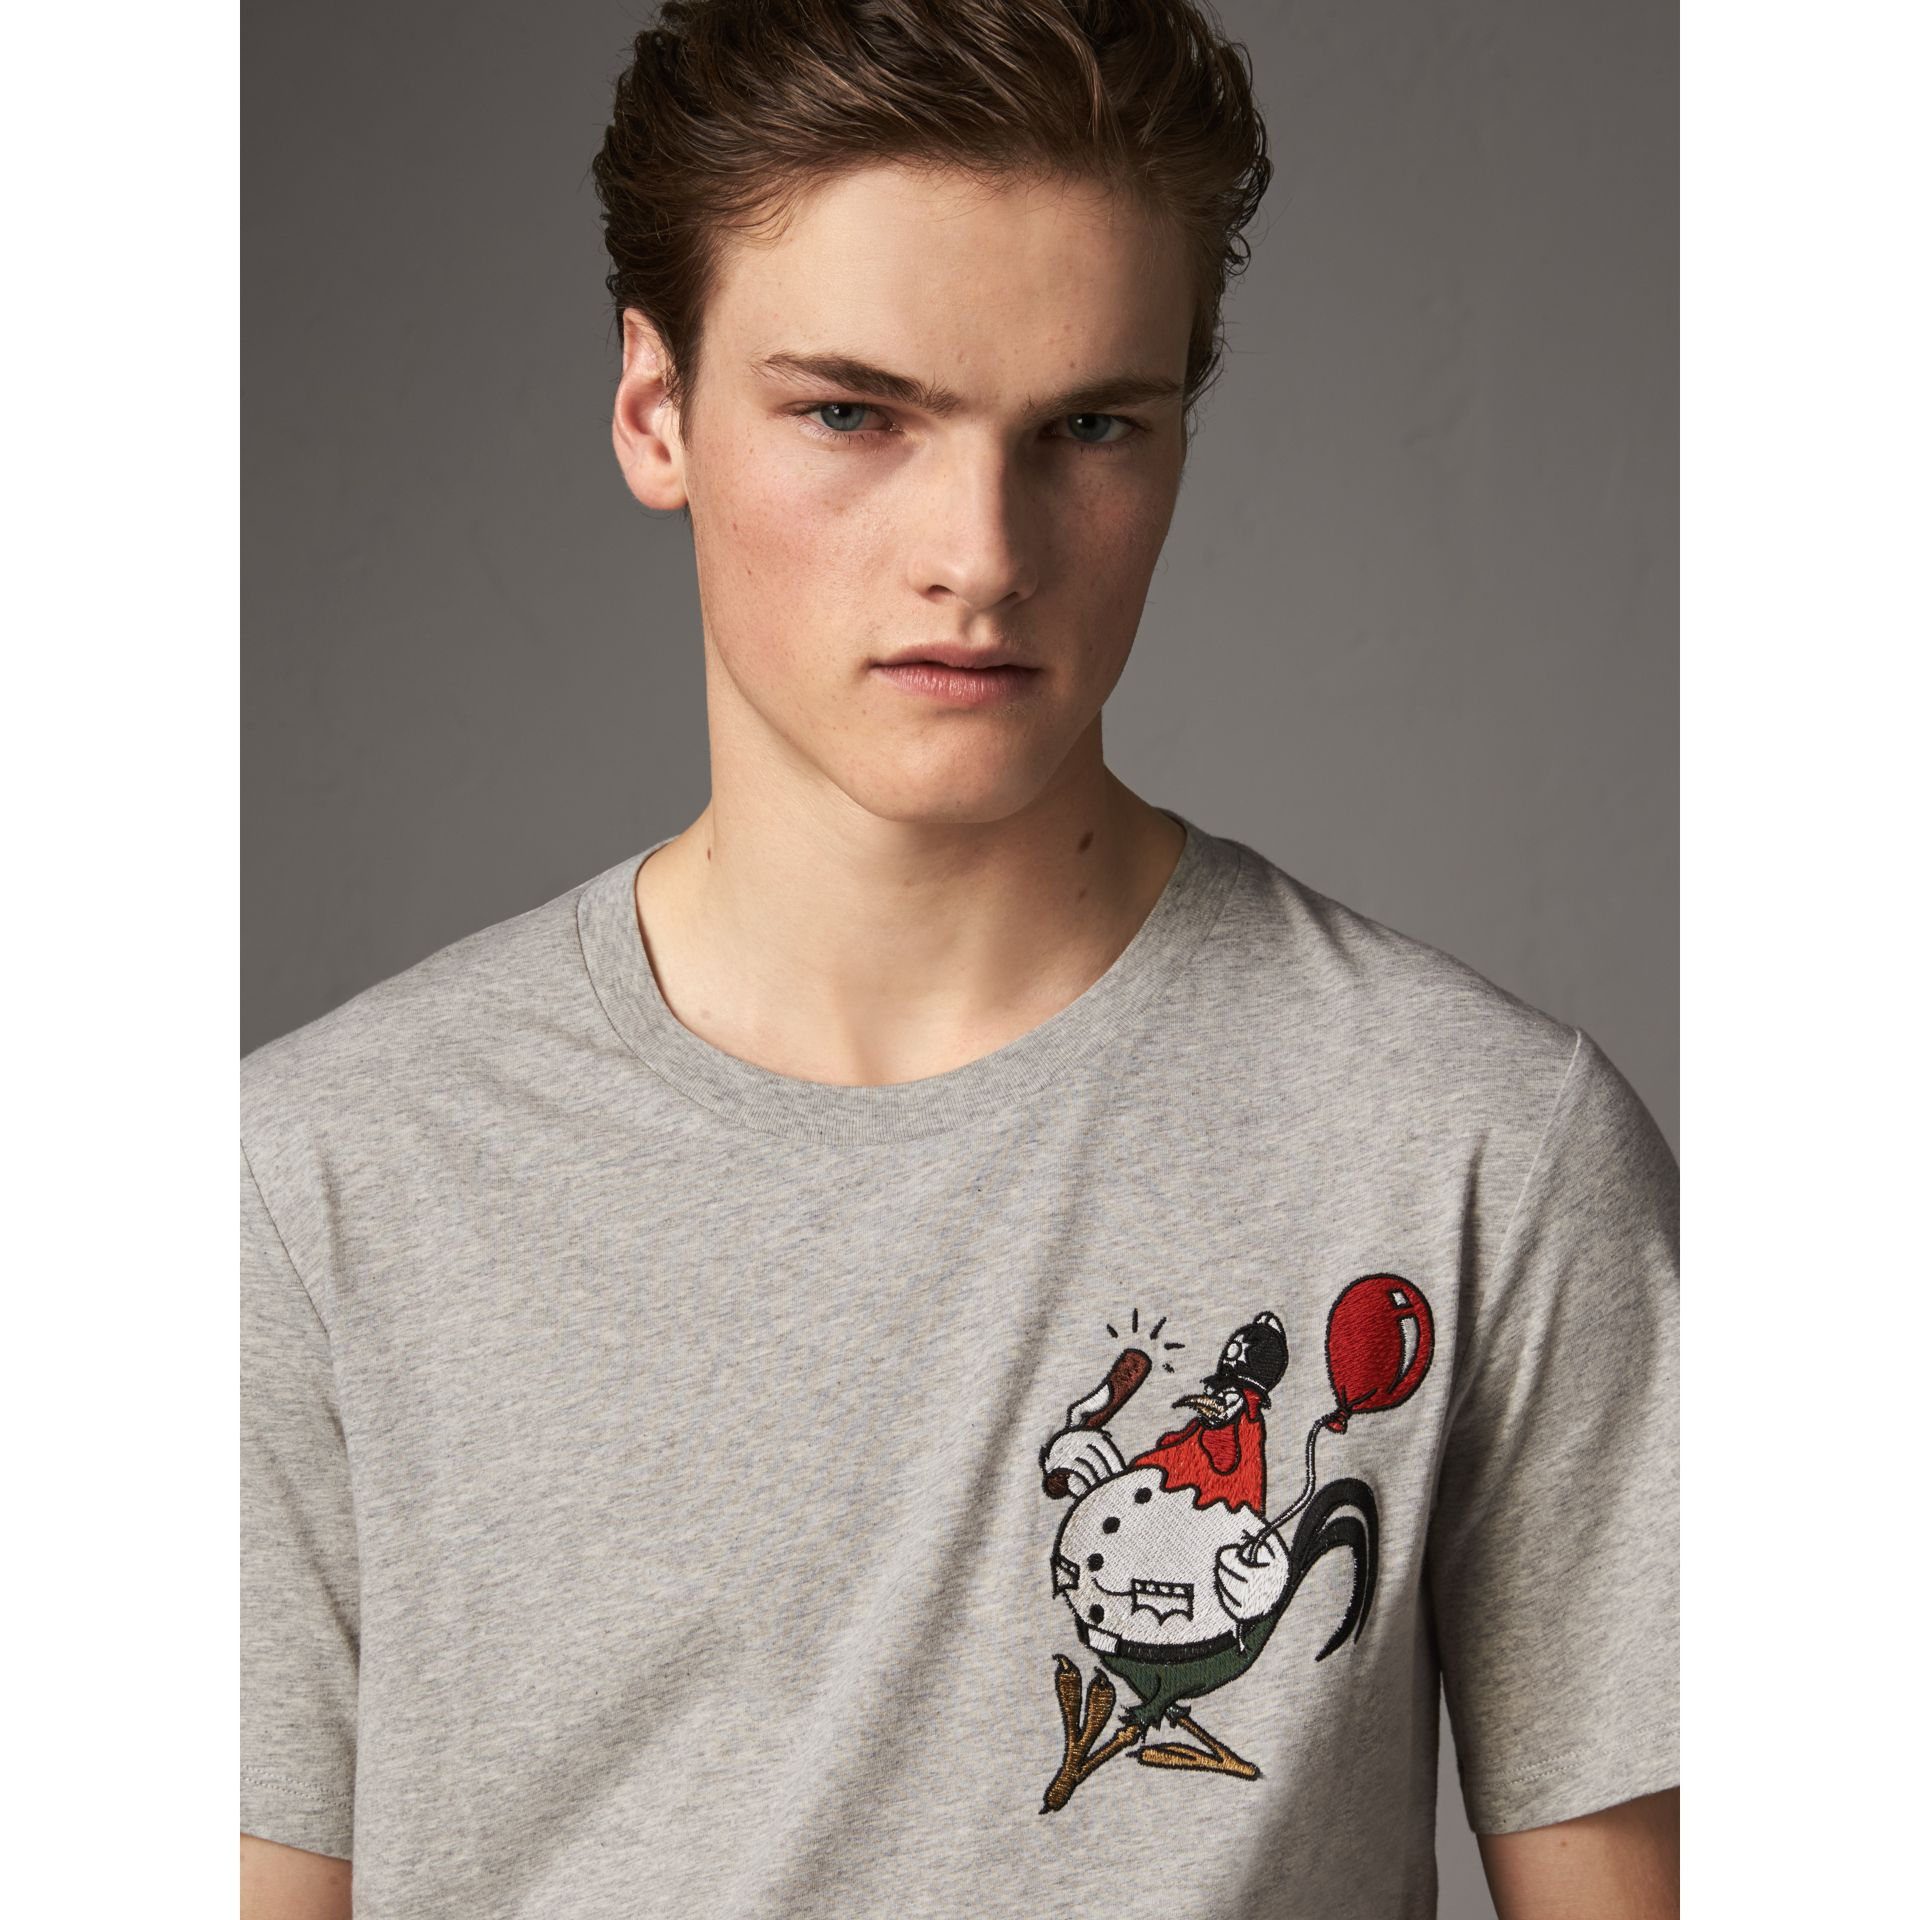 Sketch Appliqué Cotton T-shirt in Pale Grey Melange - Men | Burberry United Kingdom - gallery image 2